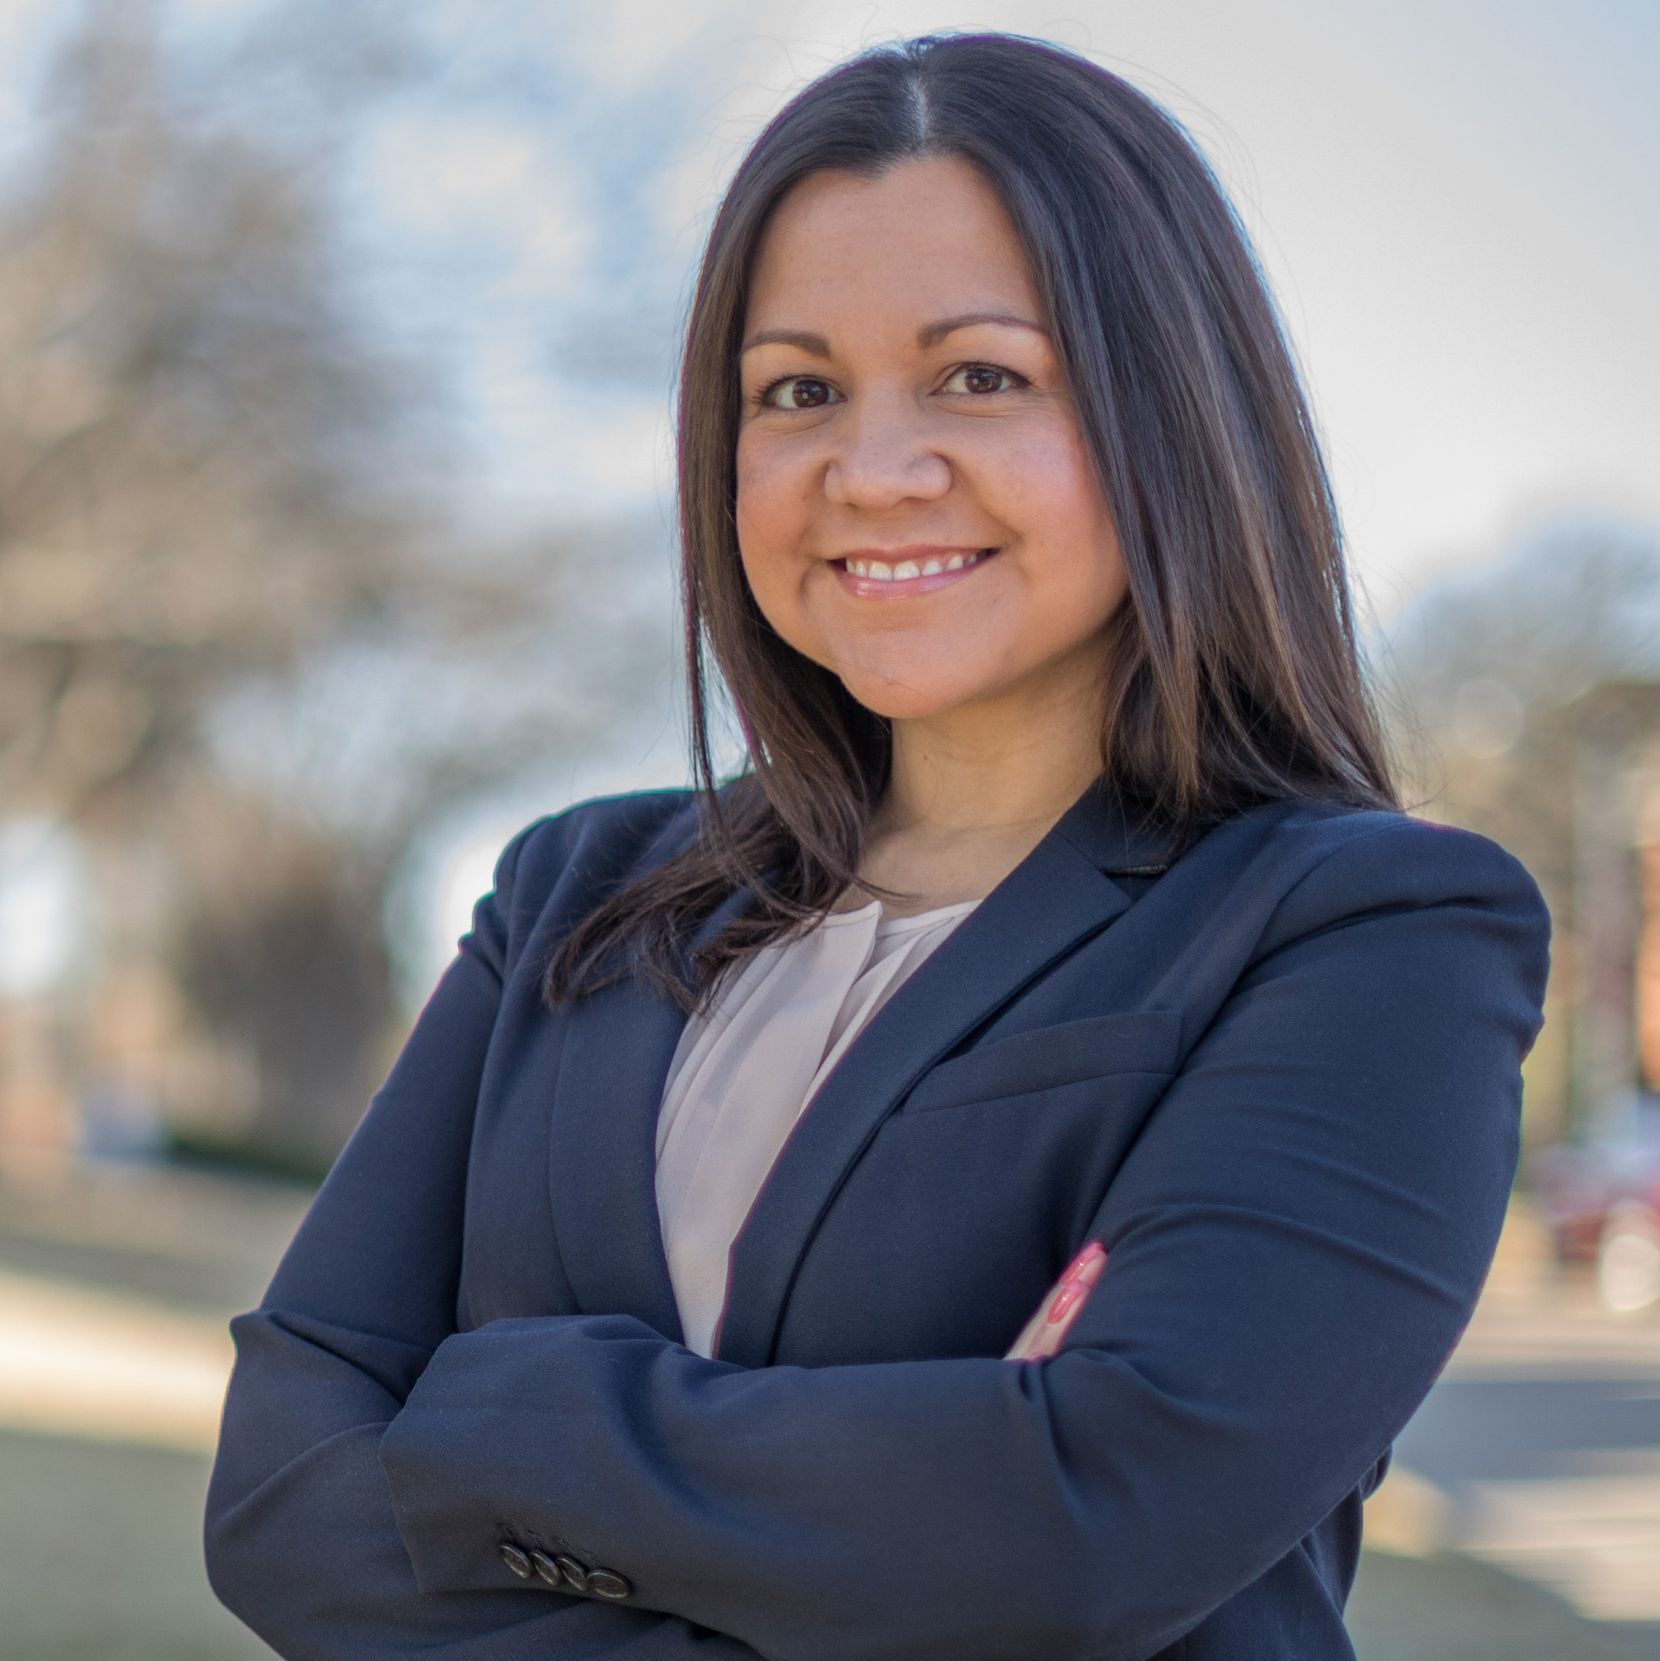 Rocio Gosewehr Hernandez is running in the Democratic primary for Texas House District 67.